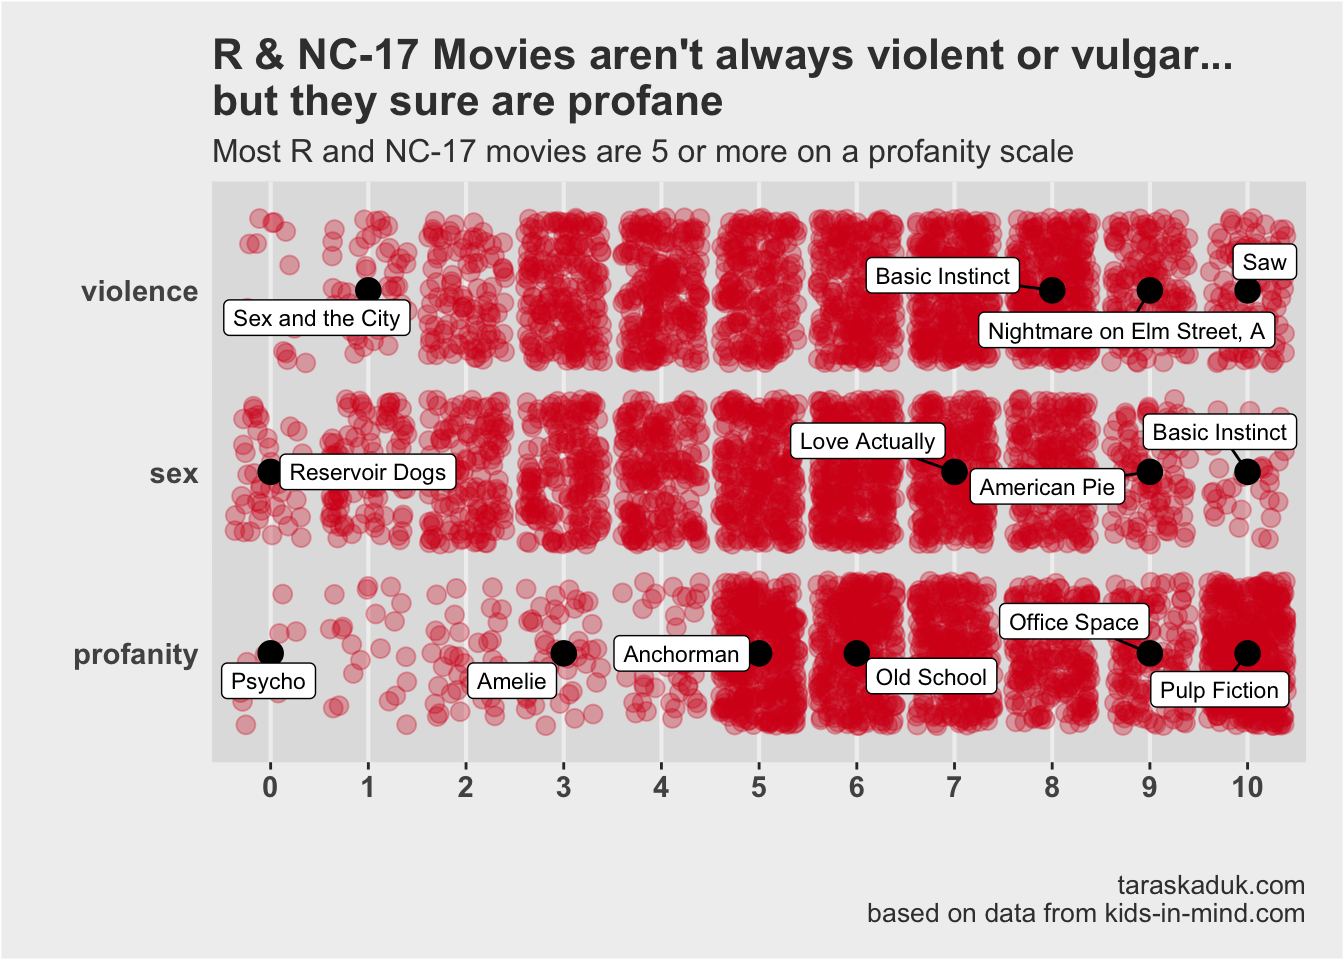 Movies in R & NC-17 categories are widely distributed across violence and sex, but snuggle tightly in the upper section of profanity